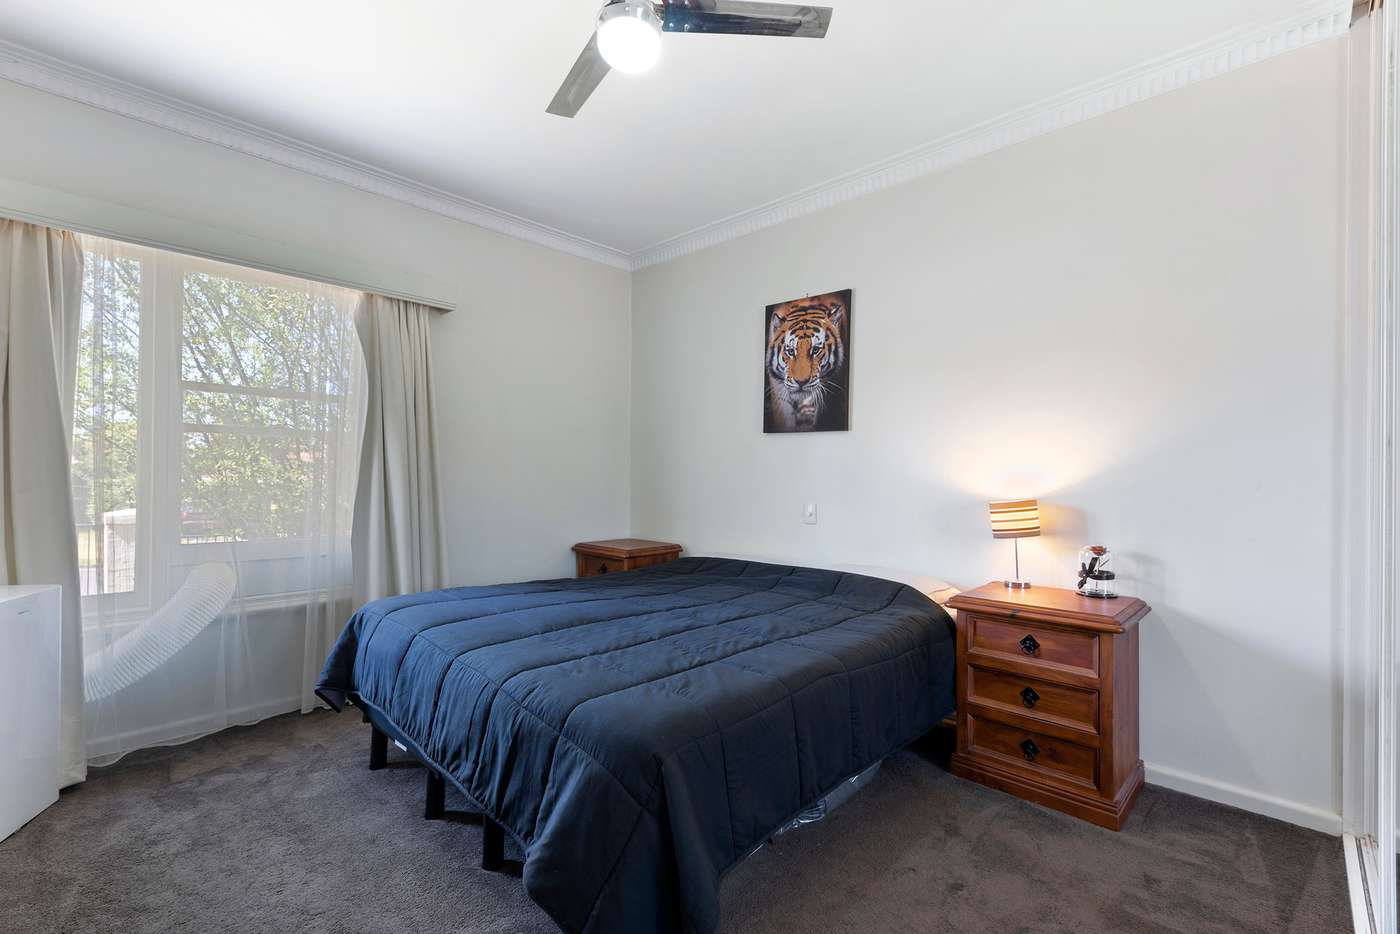 Fifth view of Homely house listing, 2 Marroo Street, White Hills VIC 3550